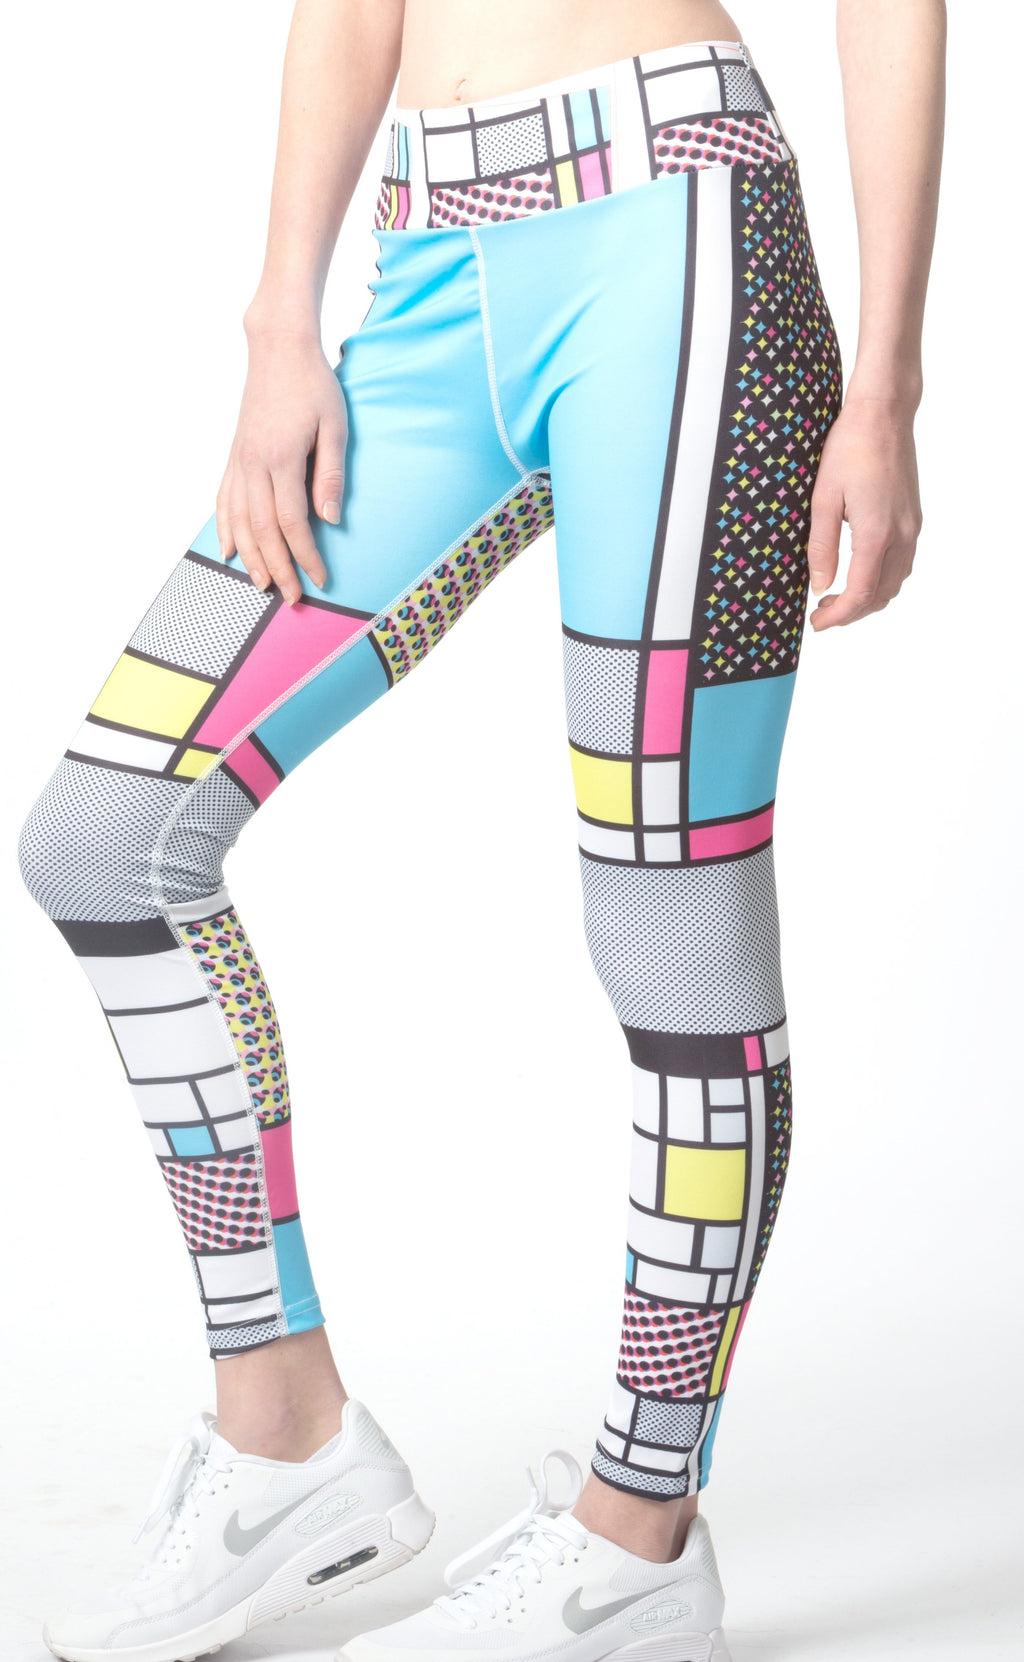 elliemei.com ellie mei design legging colorblog legging colorful legging fashion show legging runway  yoga pants .sport wear active wear  girls legging .womens legging slim legging nyfw mlfw ldfw pfw ASD amazon seller california fashion market district